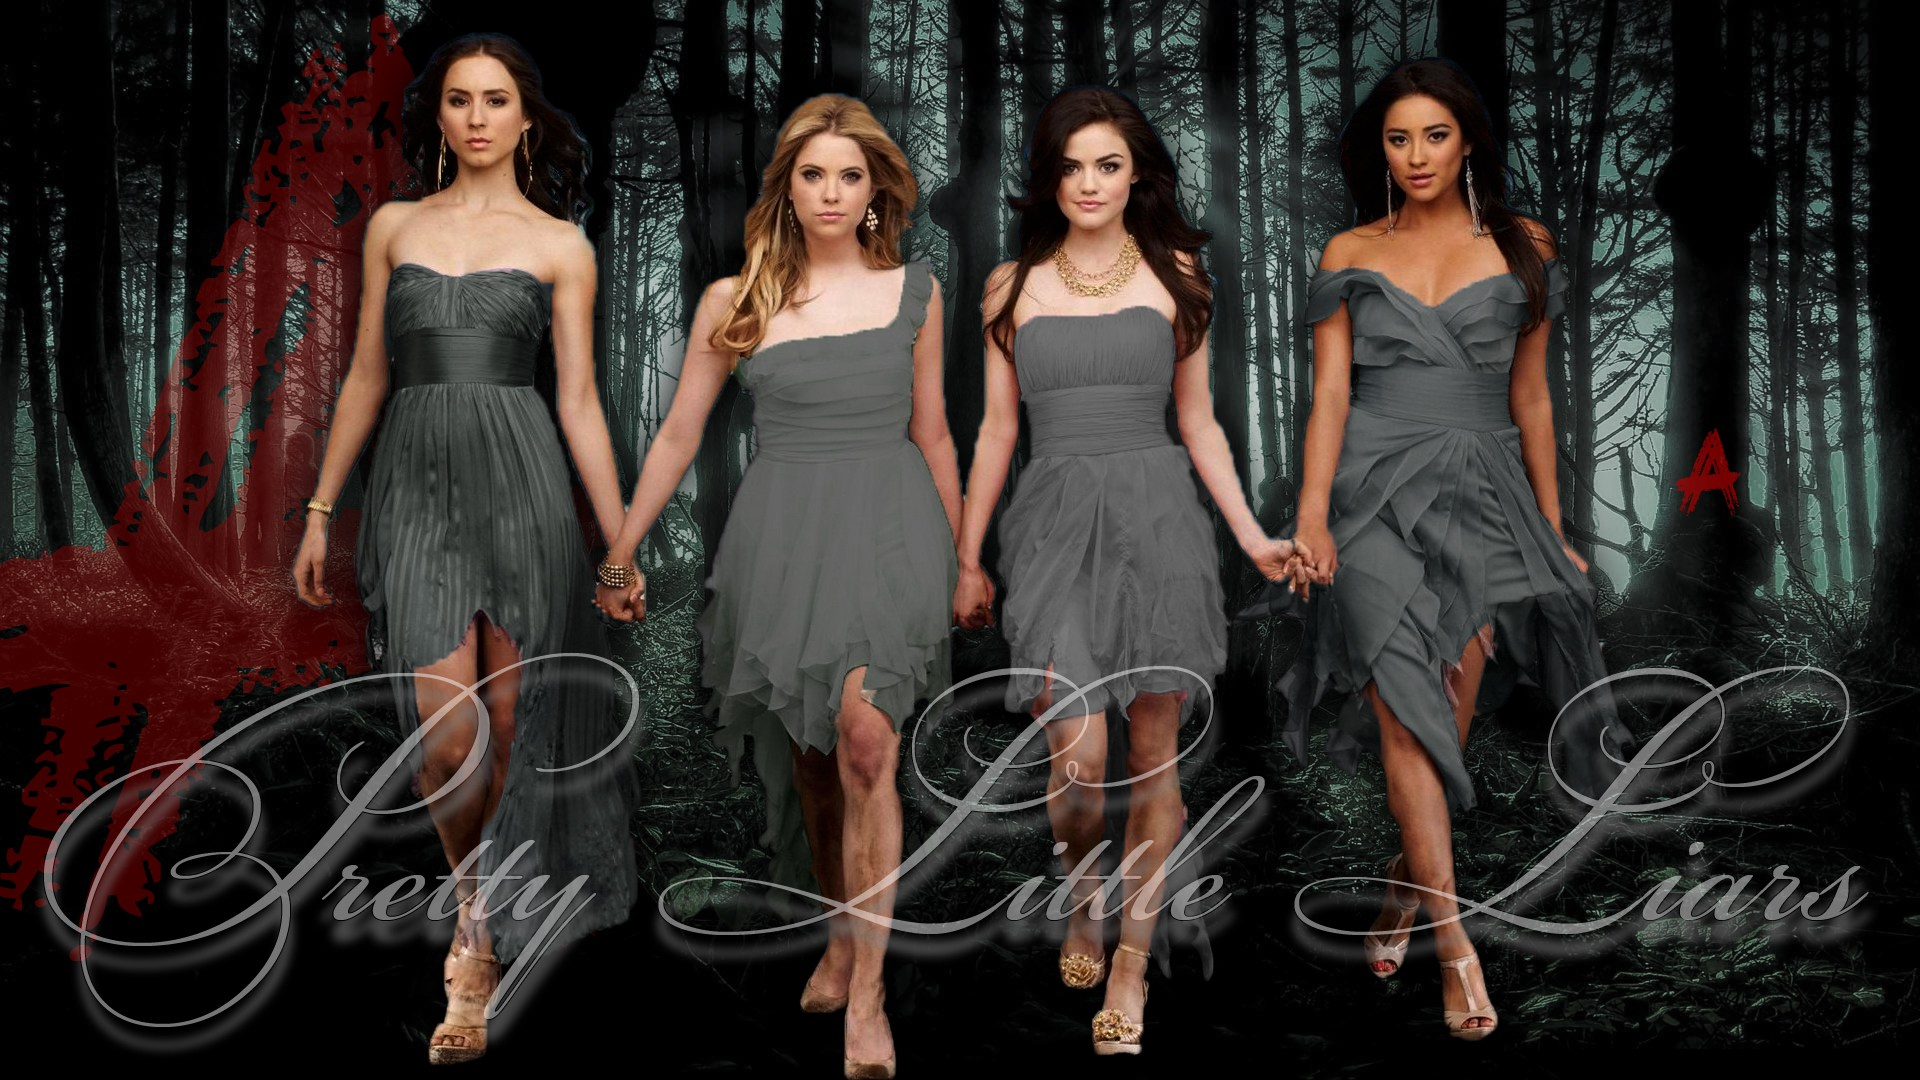 40 Exclusive Pretty Little Liars Wallpapers 1920x1080